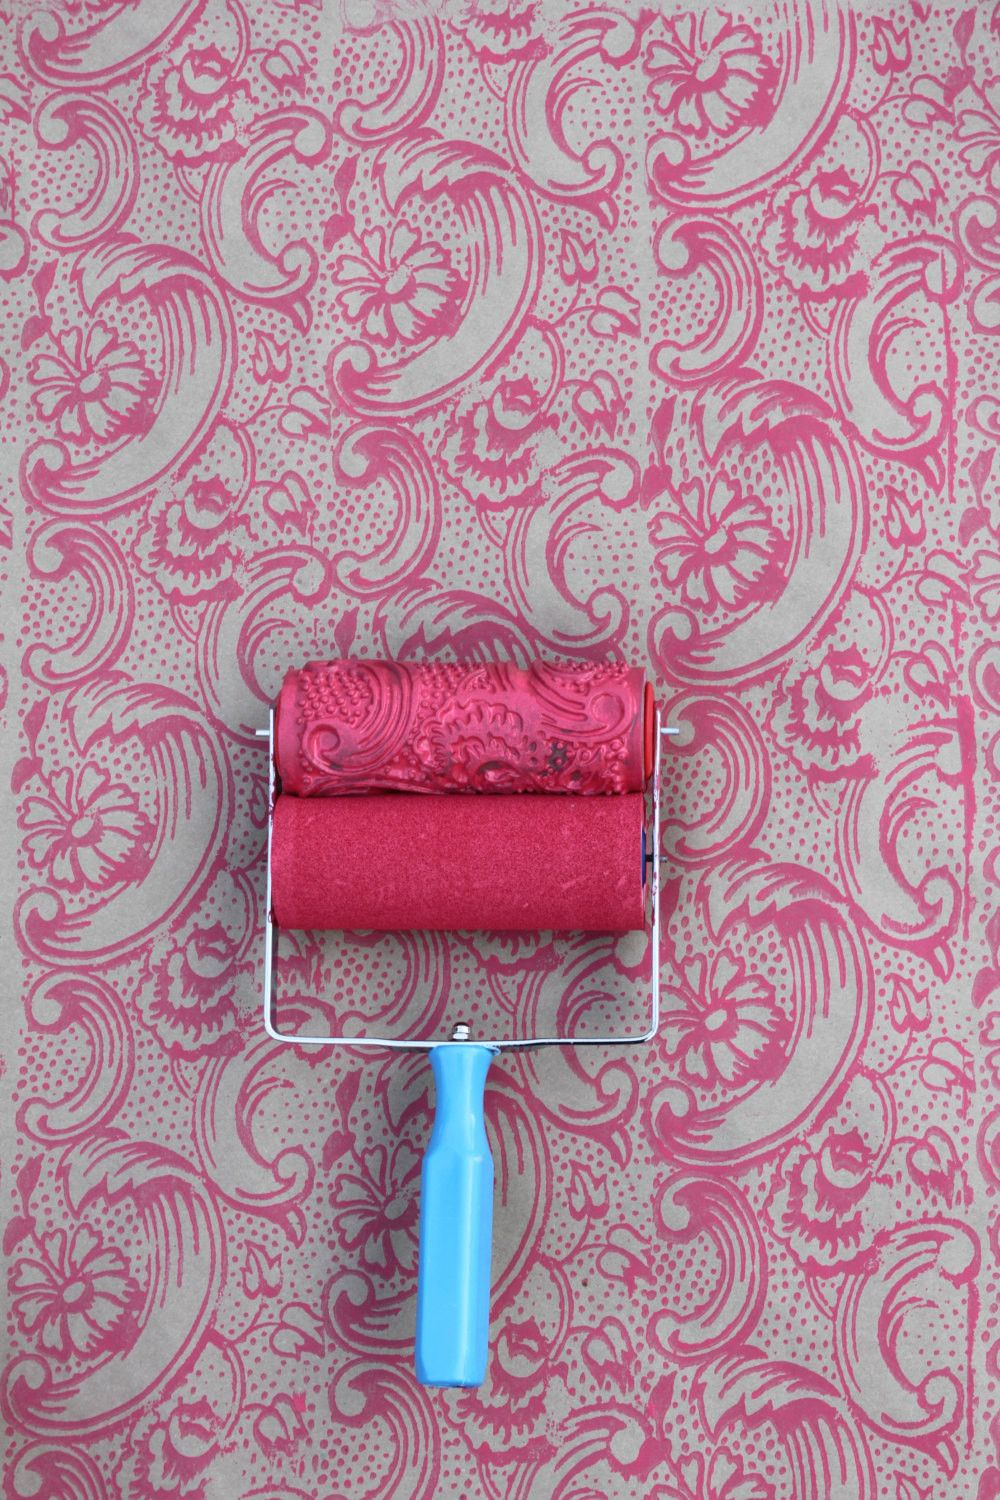 Wallpaper Paint Roller night dahlia patterned paint roller and applicator set | patterned